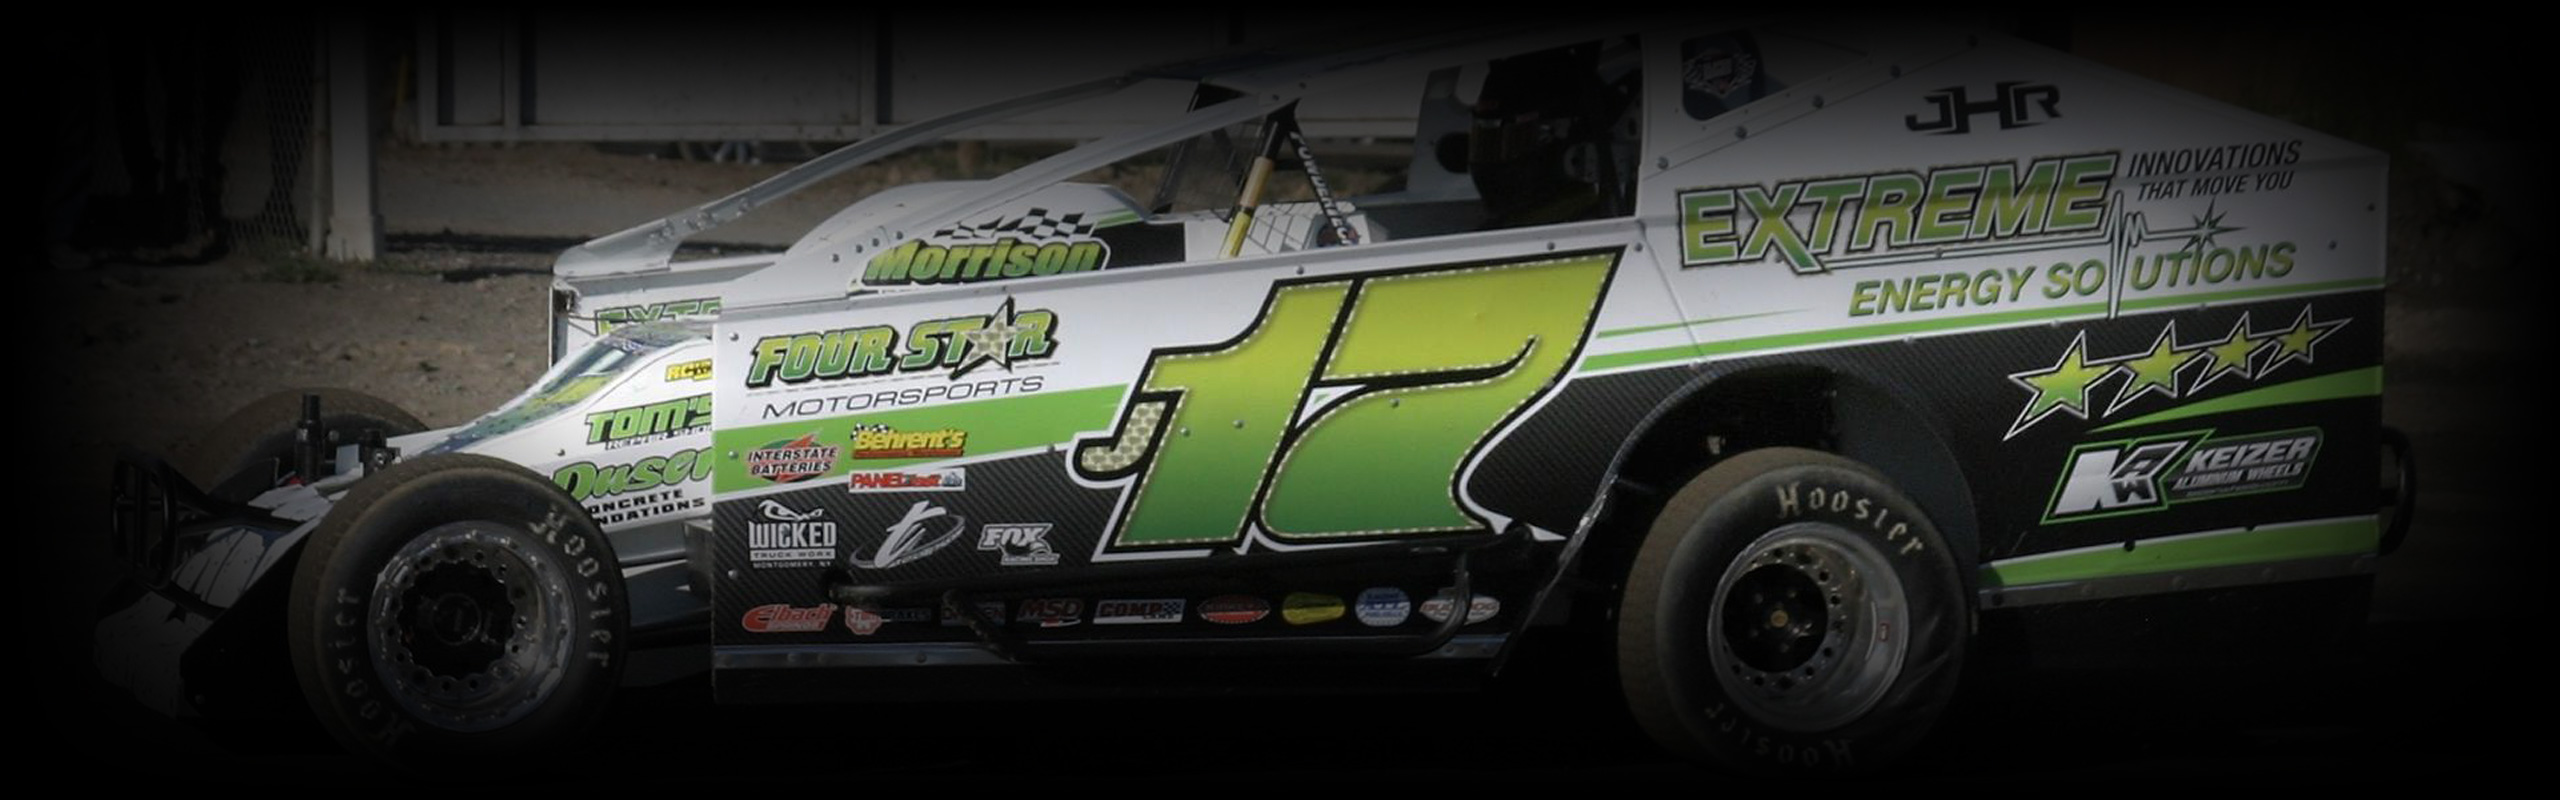 Jeff Heotzler Racing